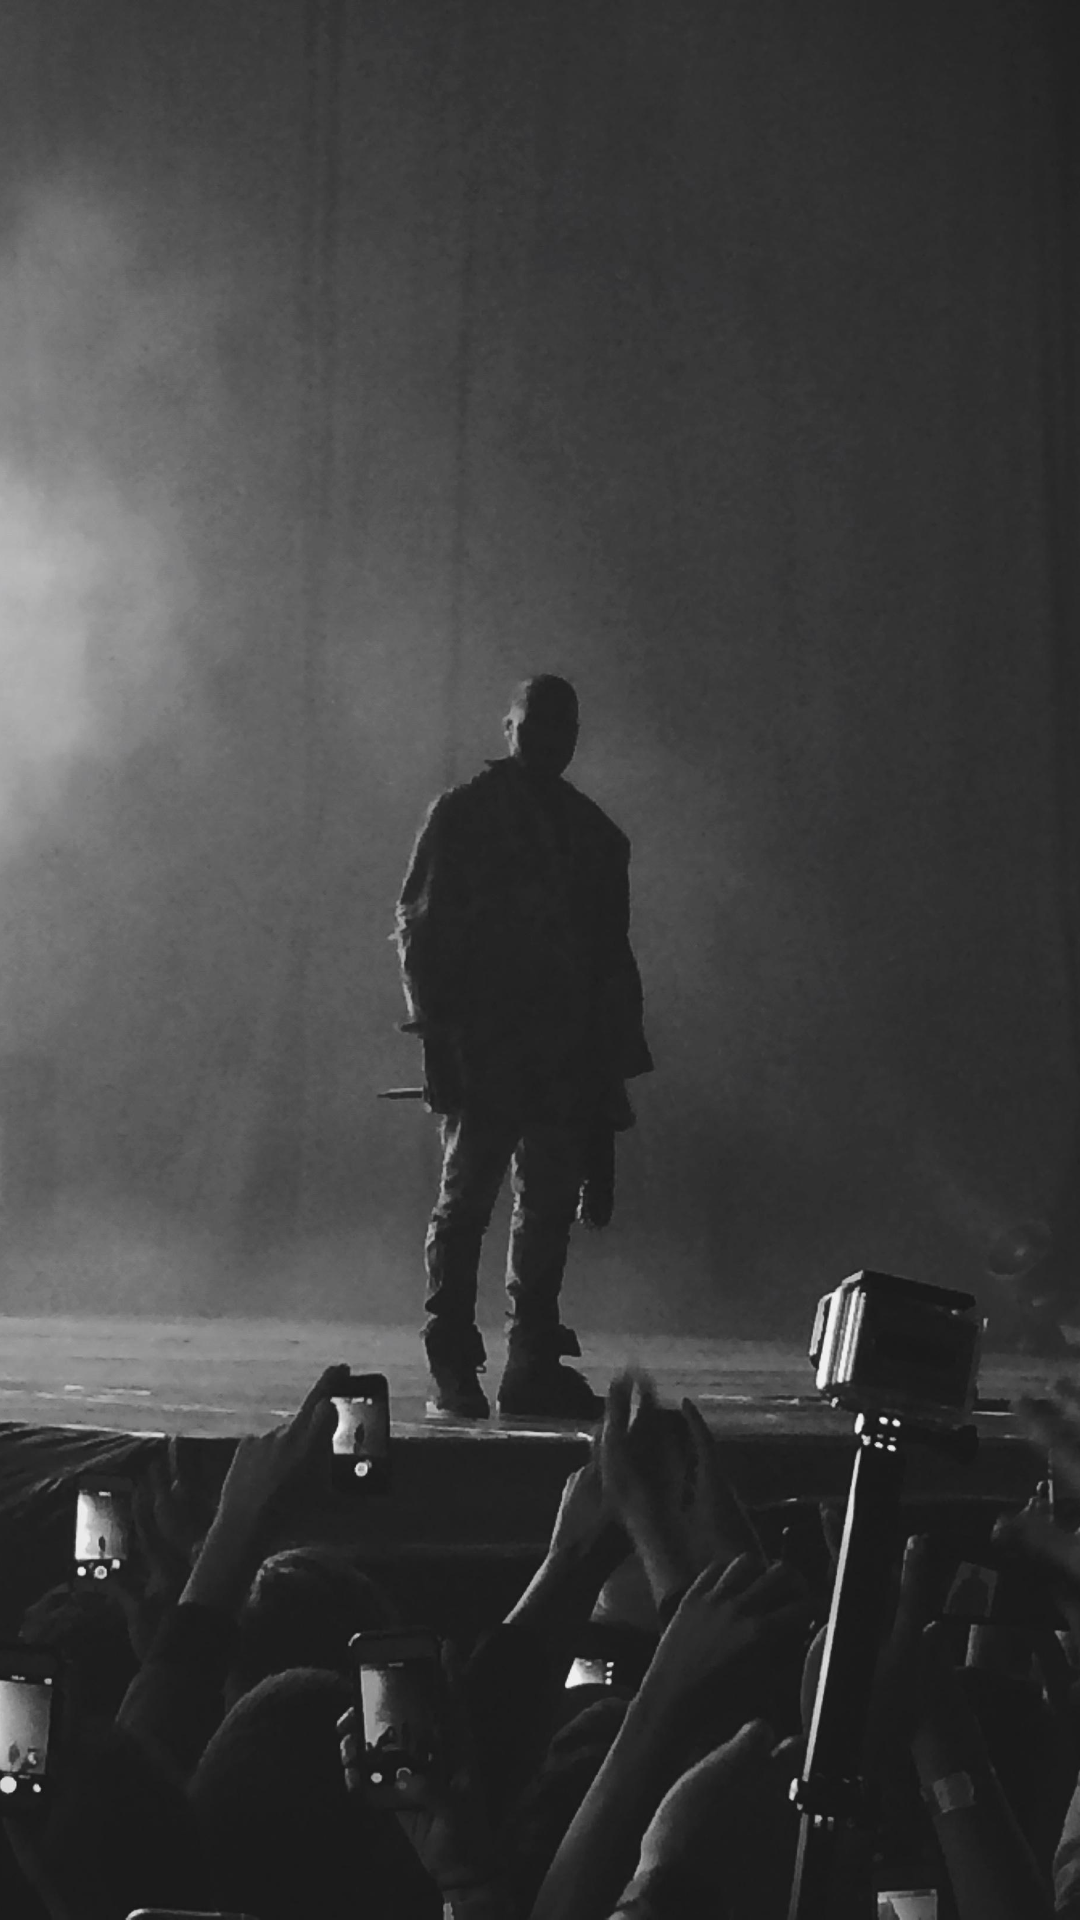 Kanye west iphone wallpaper tumblr - Download 0